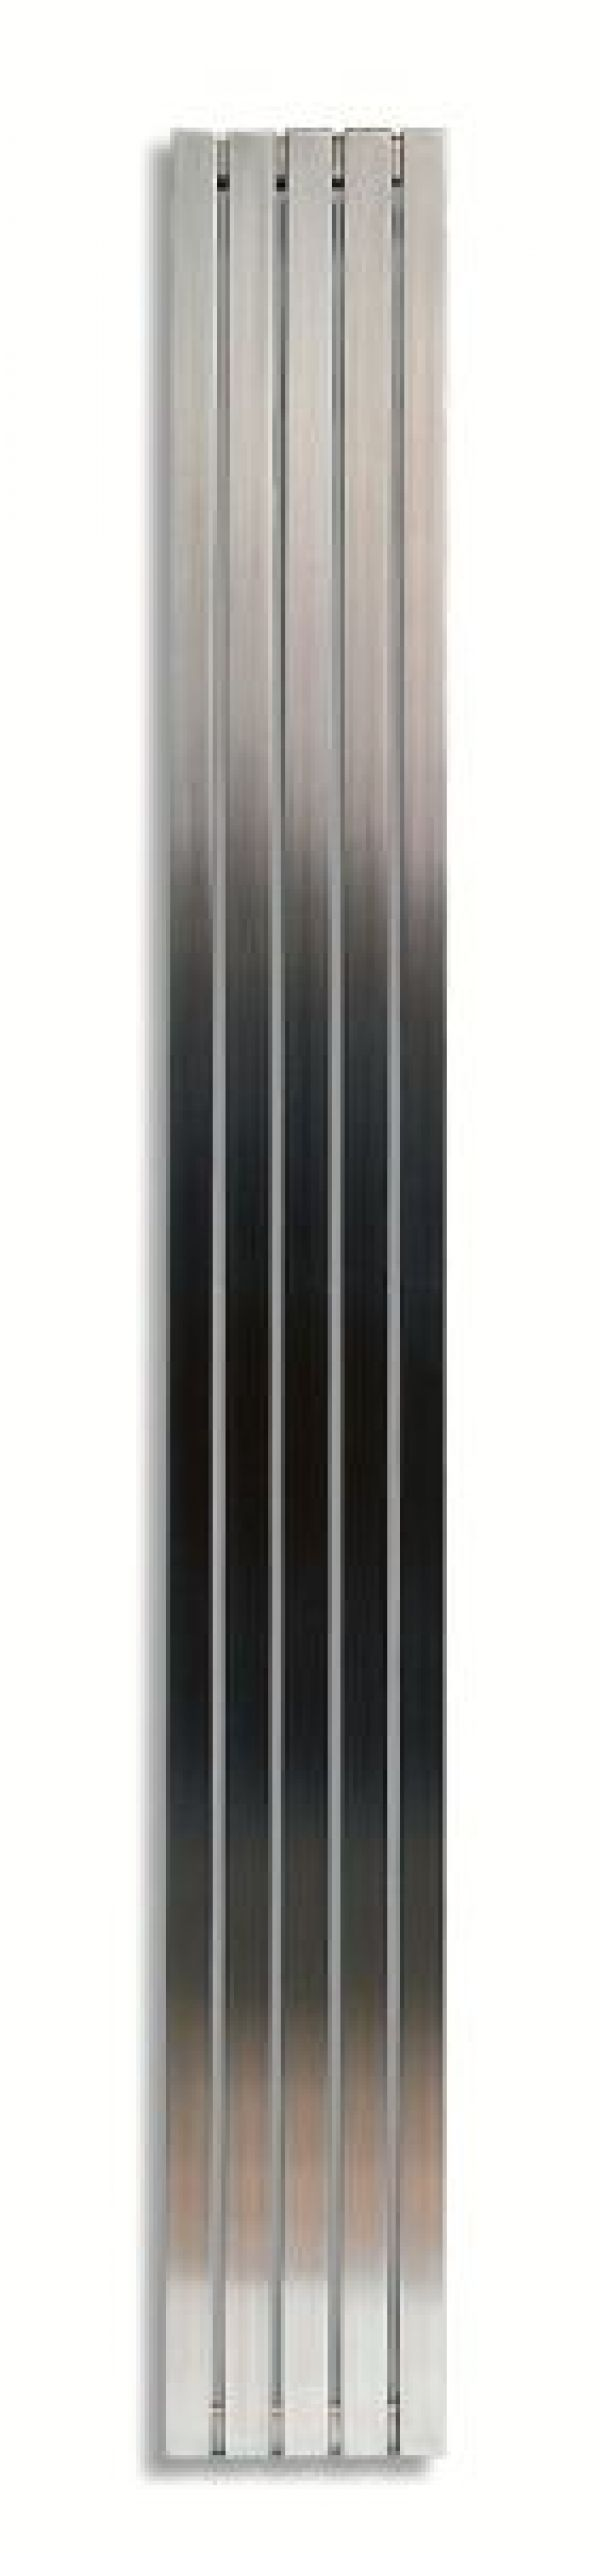 radiateur lectrique design jusqu 39 60 de r duction. Black Bedroom Furniture Sets. Home Design Ideas